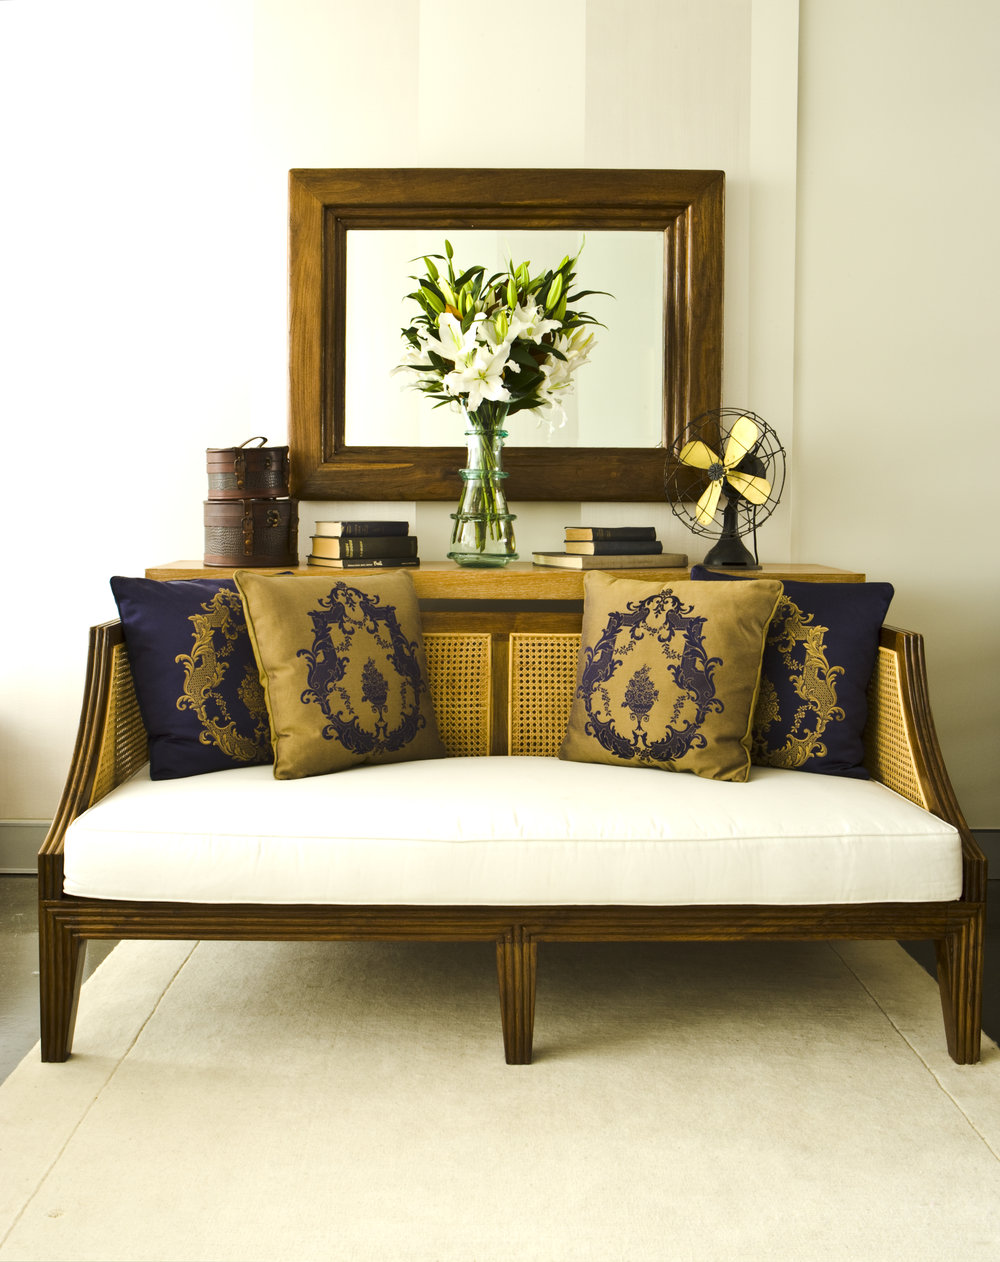 Colonial Sofa 2 Seater - 1800w x 850d x 800h - RRP $4500.00 / 3 seater 2100w x 890d x 800h - RRP $5200.00